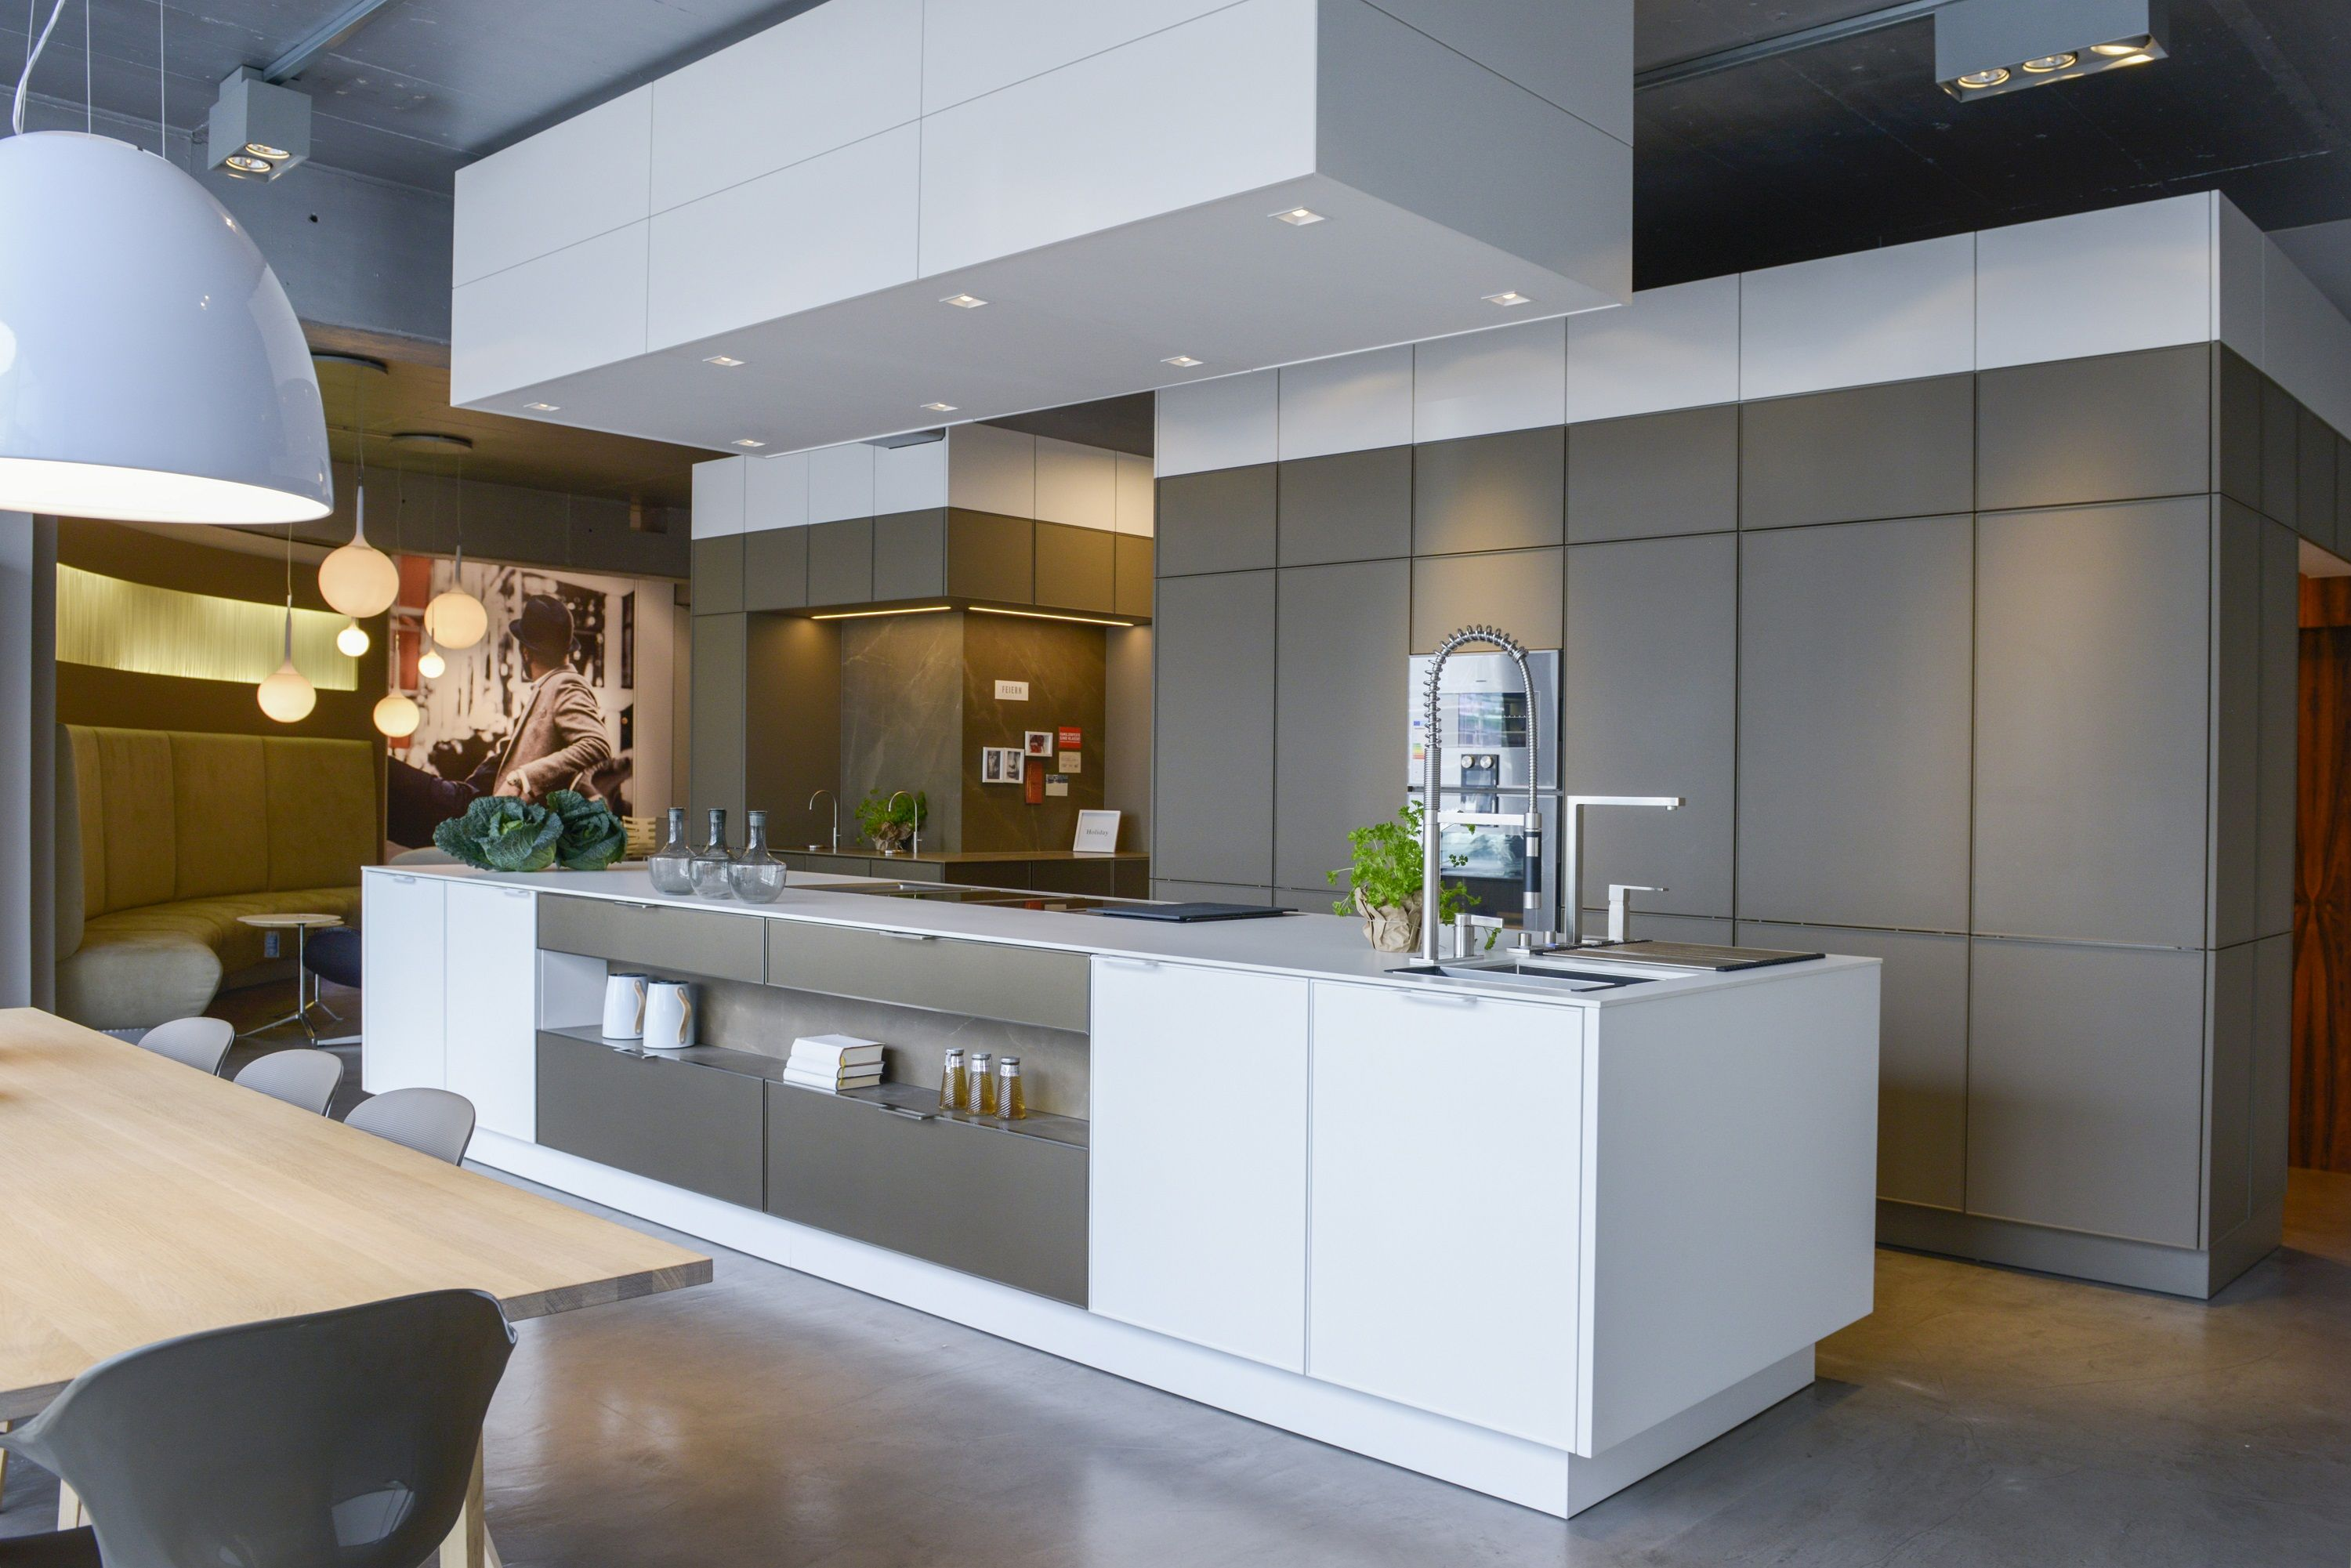 Siematic In Gold Bronze Brings Sleek Yet Comfortable Tones To A An